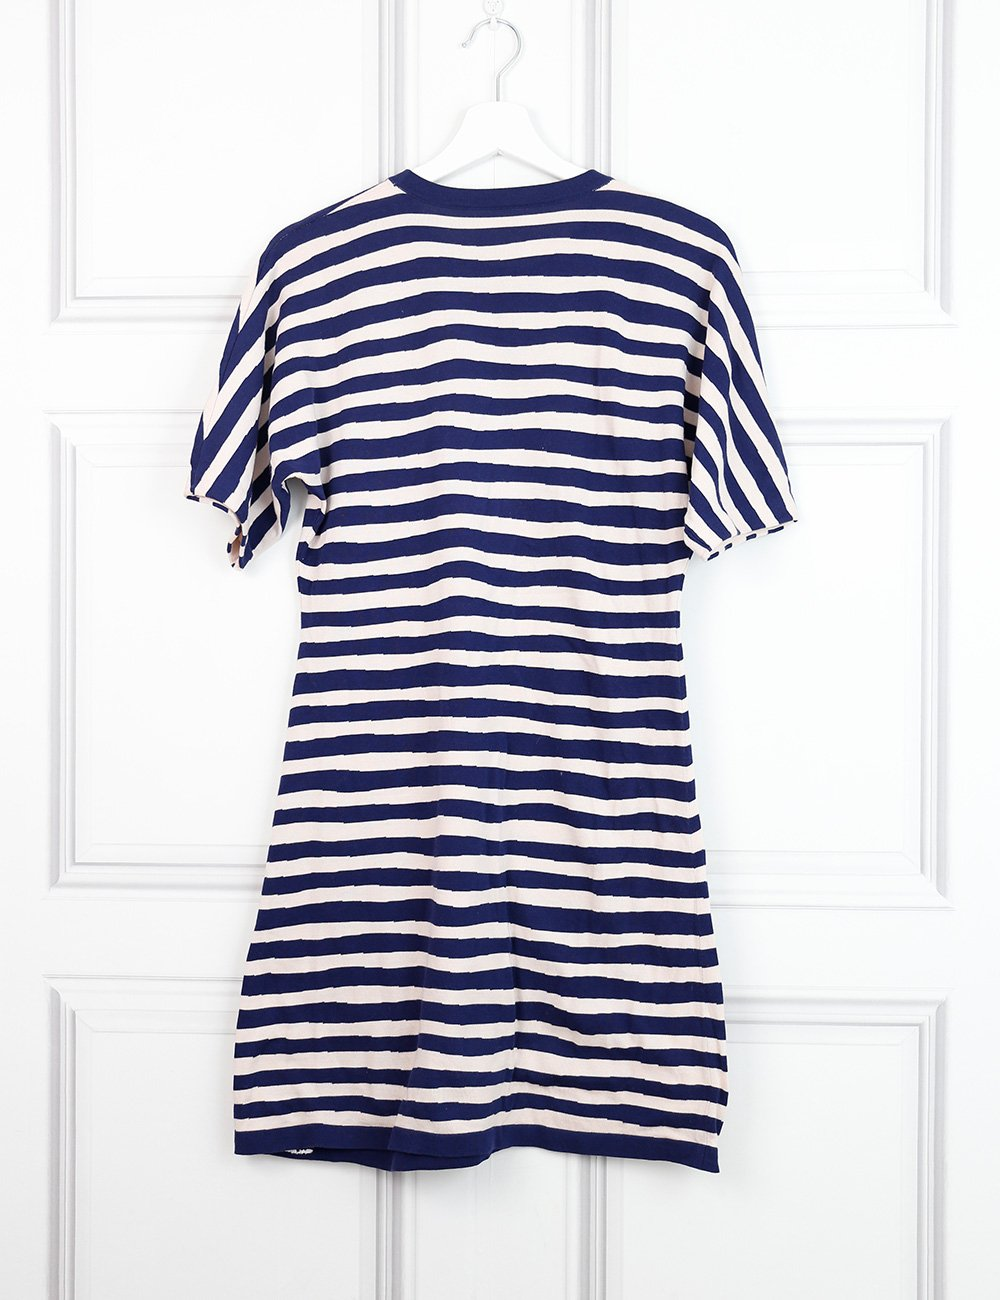 Balenciaga multicolour striped T-shirt dress 10 UK- My Wardrobe Mistakes